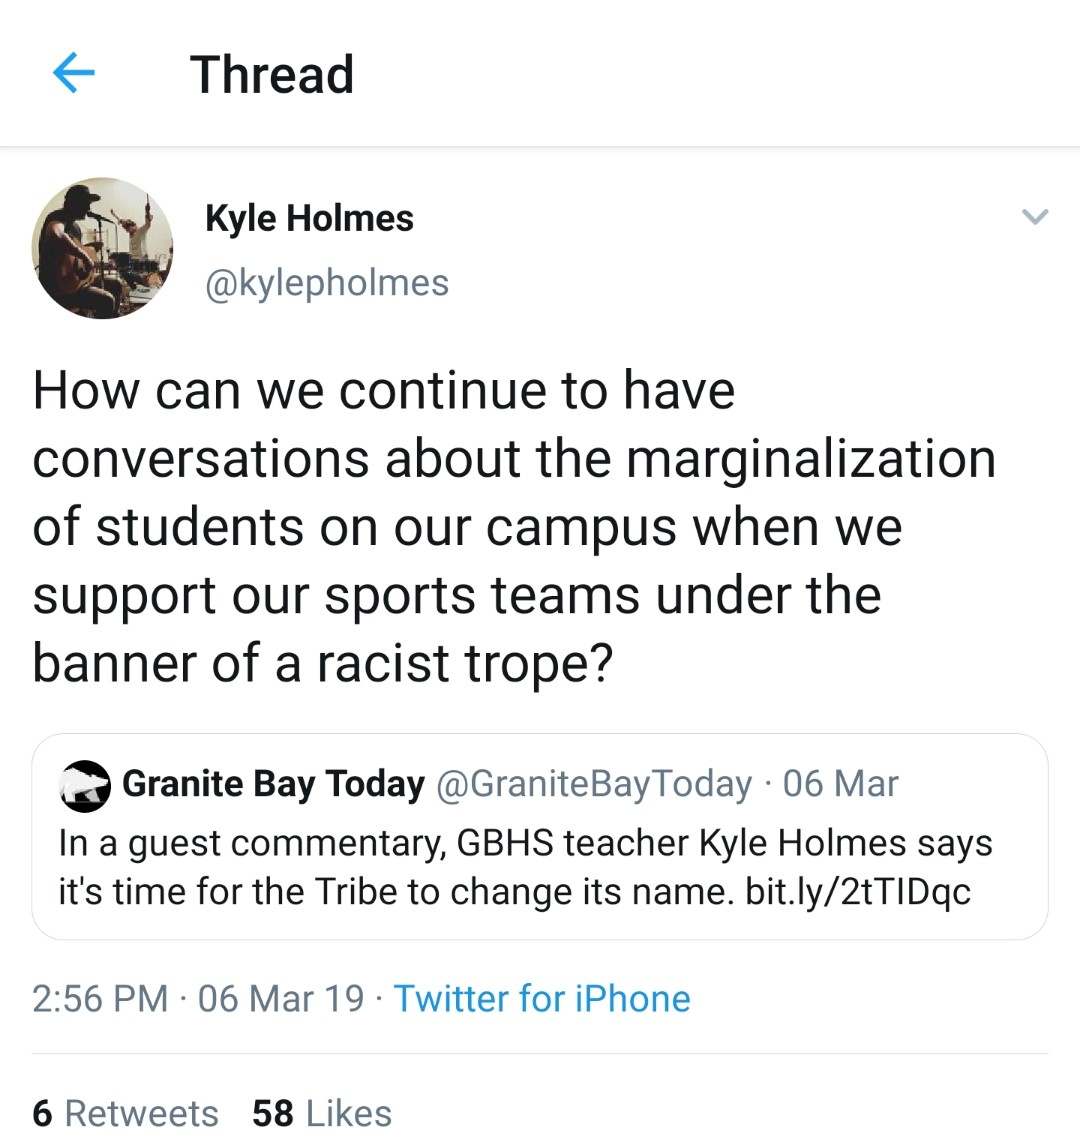 Holmes retweeted his piece on Twitter, sparking more conversation about the Tribe.